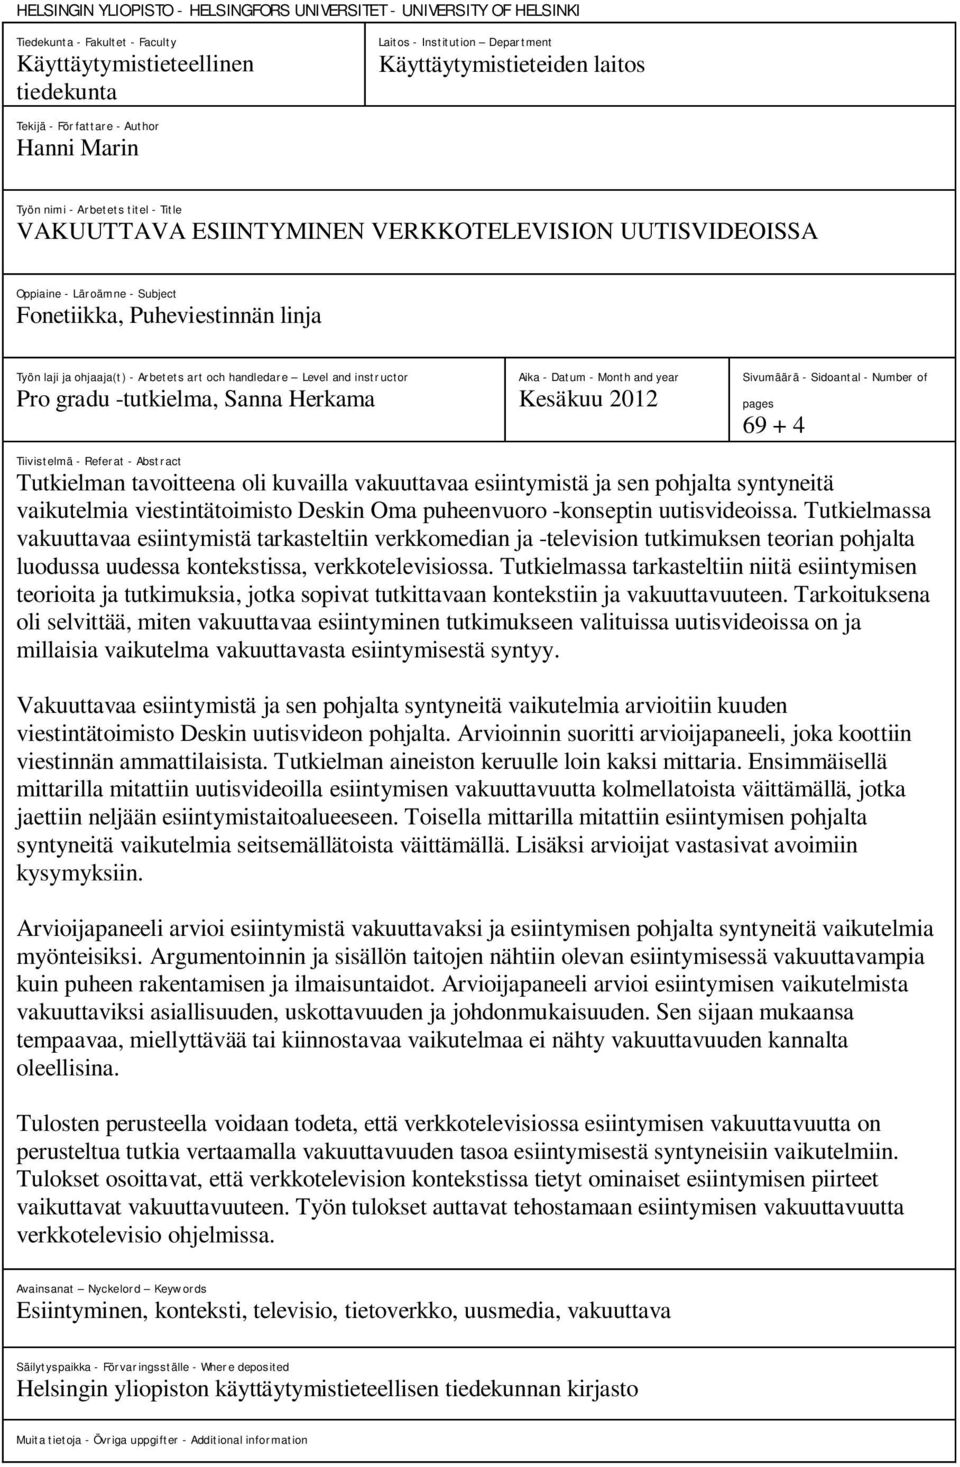 linja Työn laji ja ohjaaja(t) - Arbetets art och handledare Level and instructor Pro gradu -tutkielma, Sanna Herkama Aika - Datum - Month and year Kesäkuu 2012 Sivumäärä - Sidoantal - Number of pages